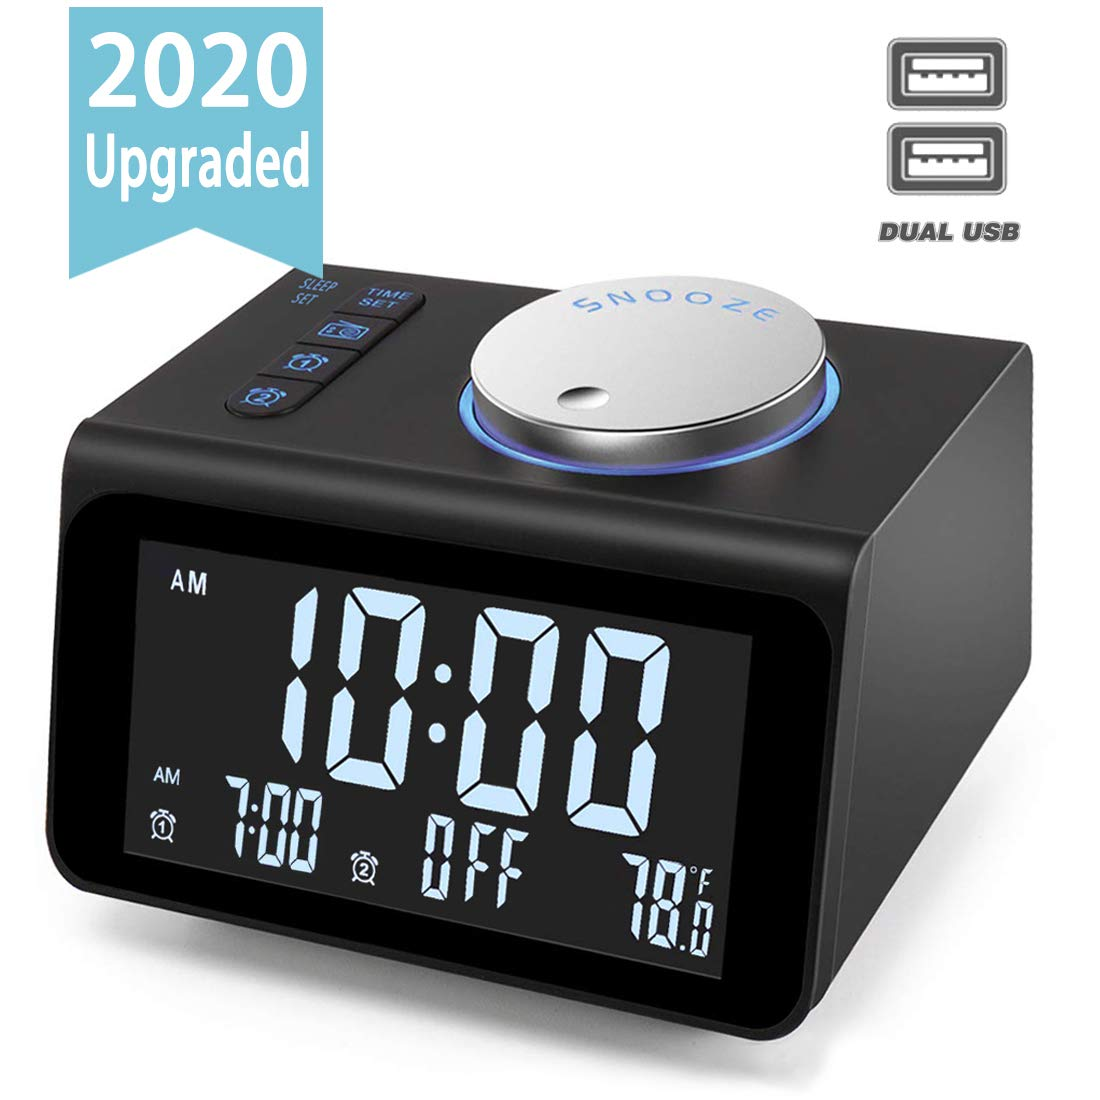 【Upgraded】Digital Alarm Clock, with FM Radio, Dual USB Charging Ports, Temperature Detect, Dual Alarms, Snooze, 5-Level Brightness Dimmer, Batteries Operated, for Bedroom, Small Sleep Timer 61hiyyg23ML